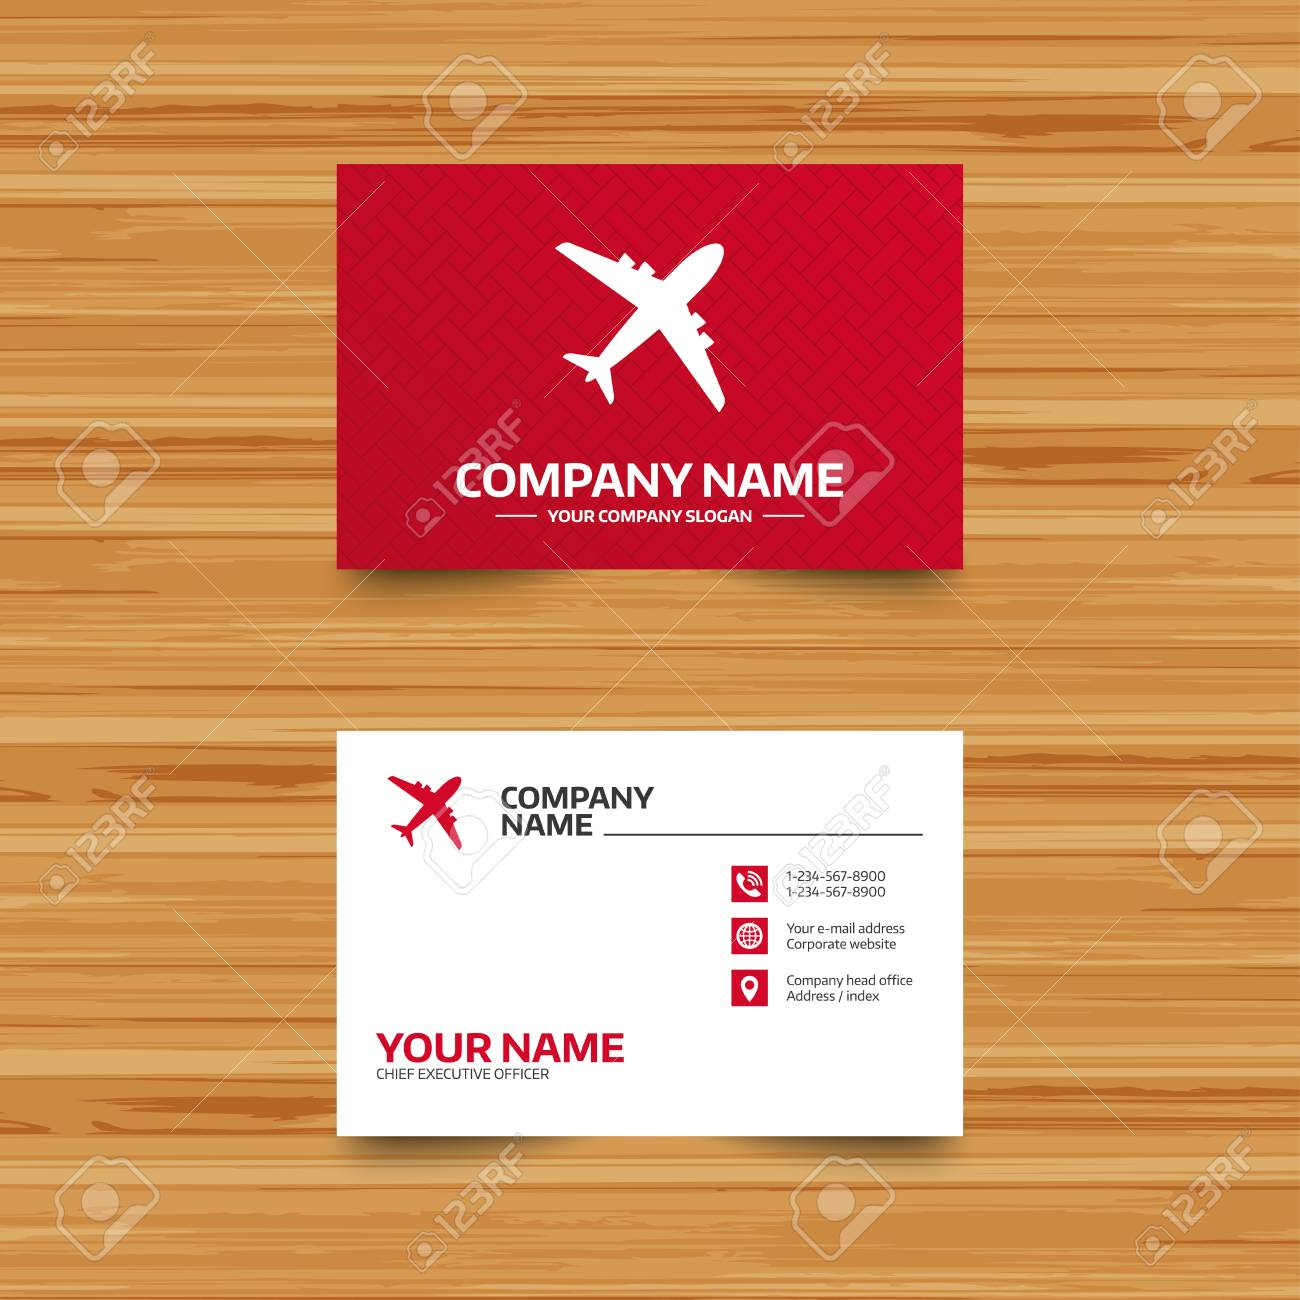 Business card template airplane sign plane symbol travel icon business card template airplane sign plane symbol travel icon flight flat label accmission Gallery